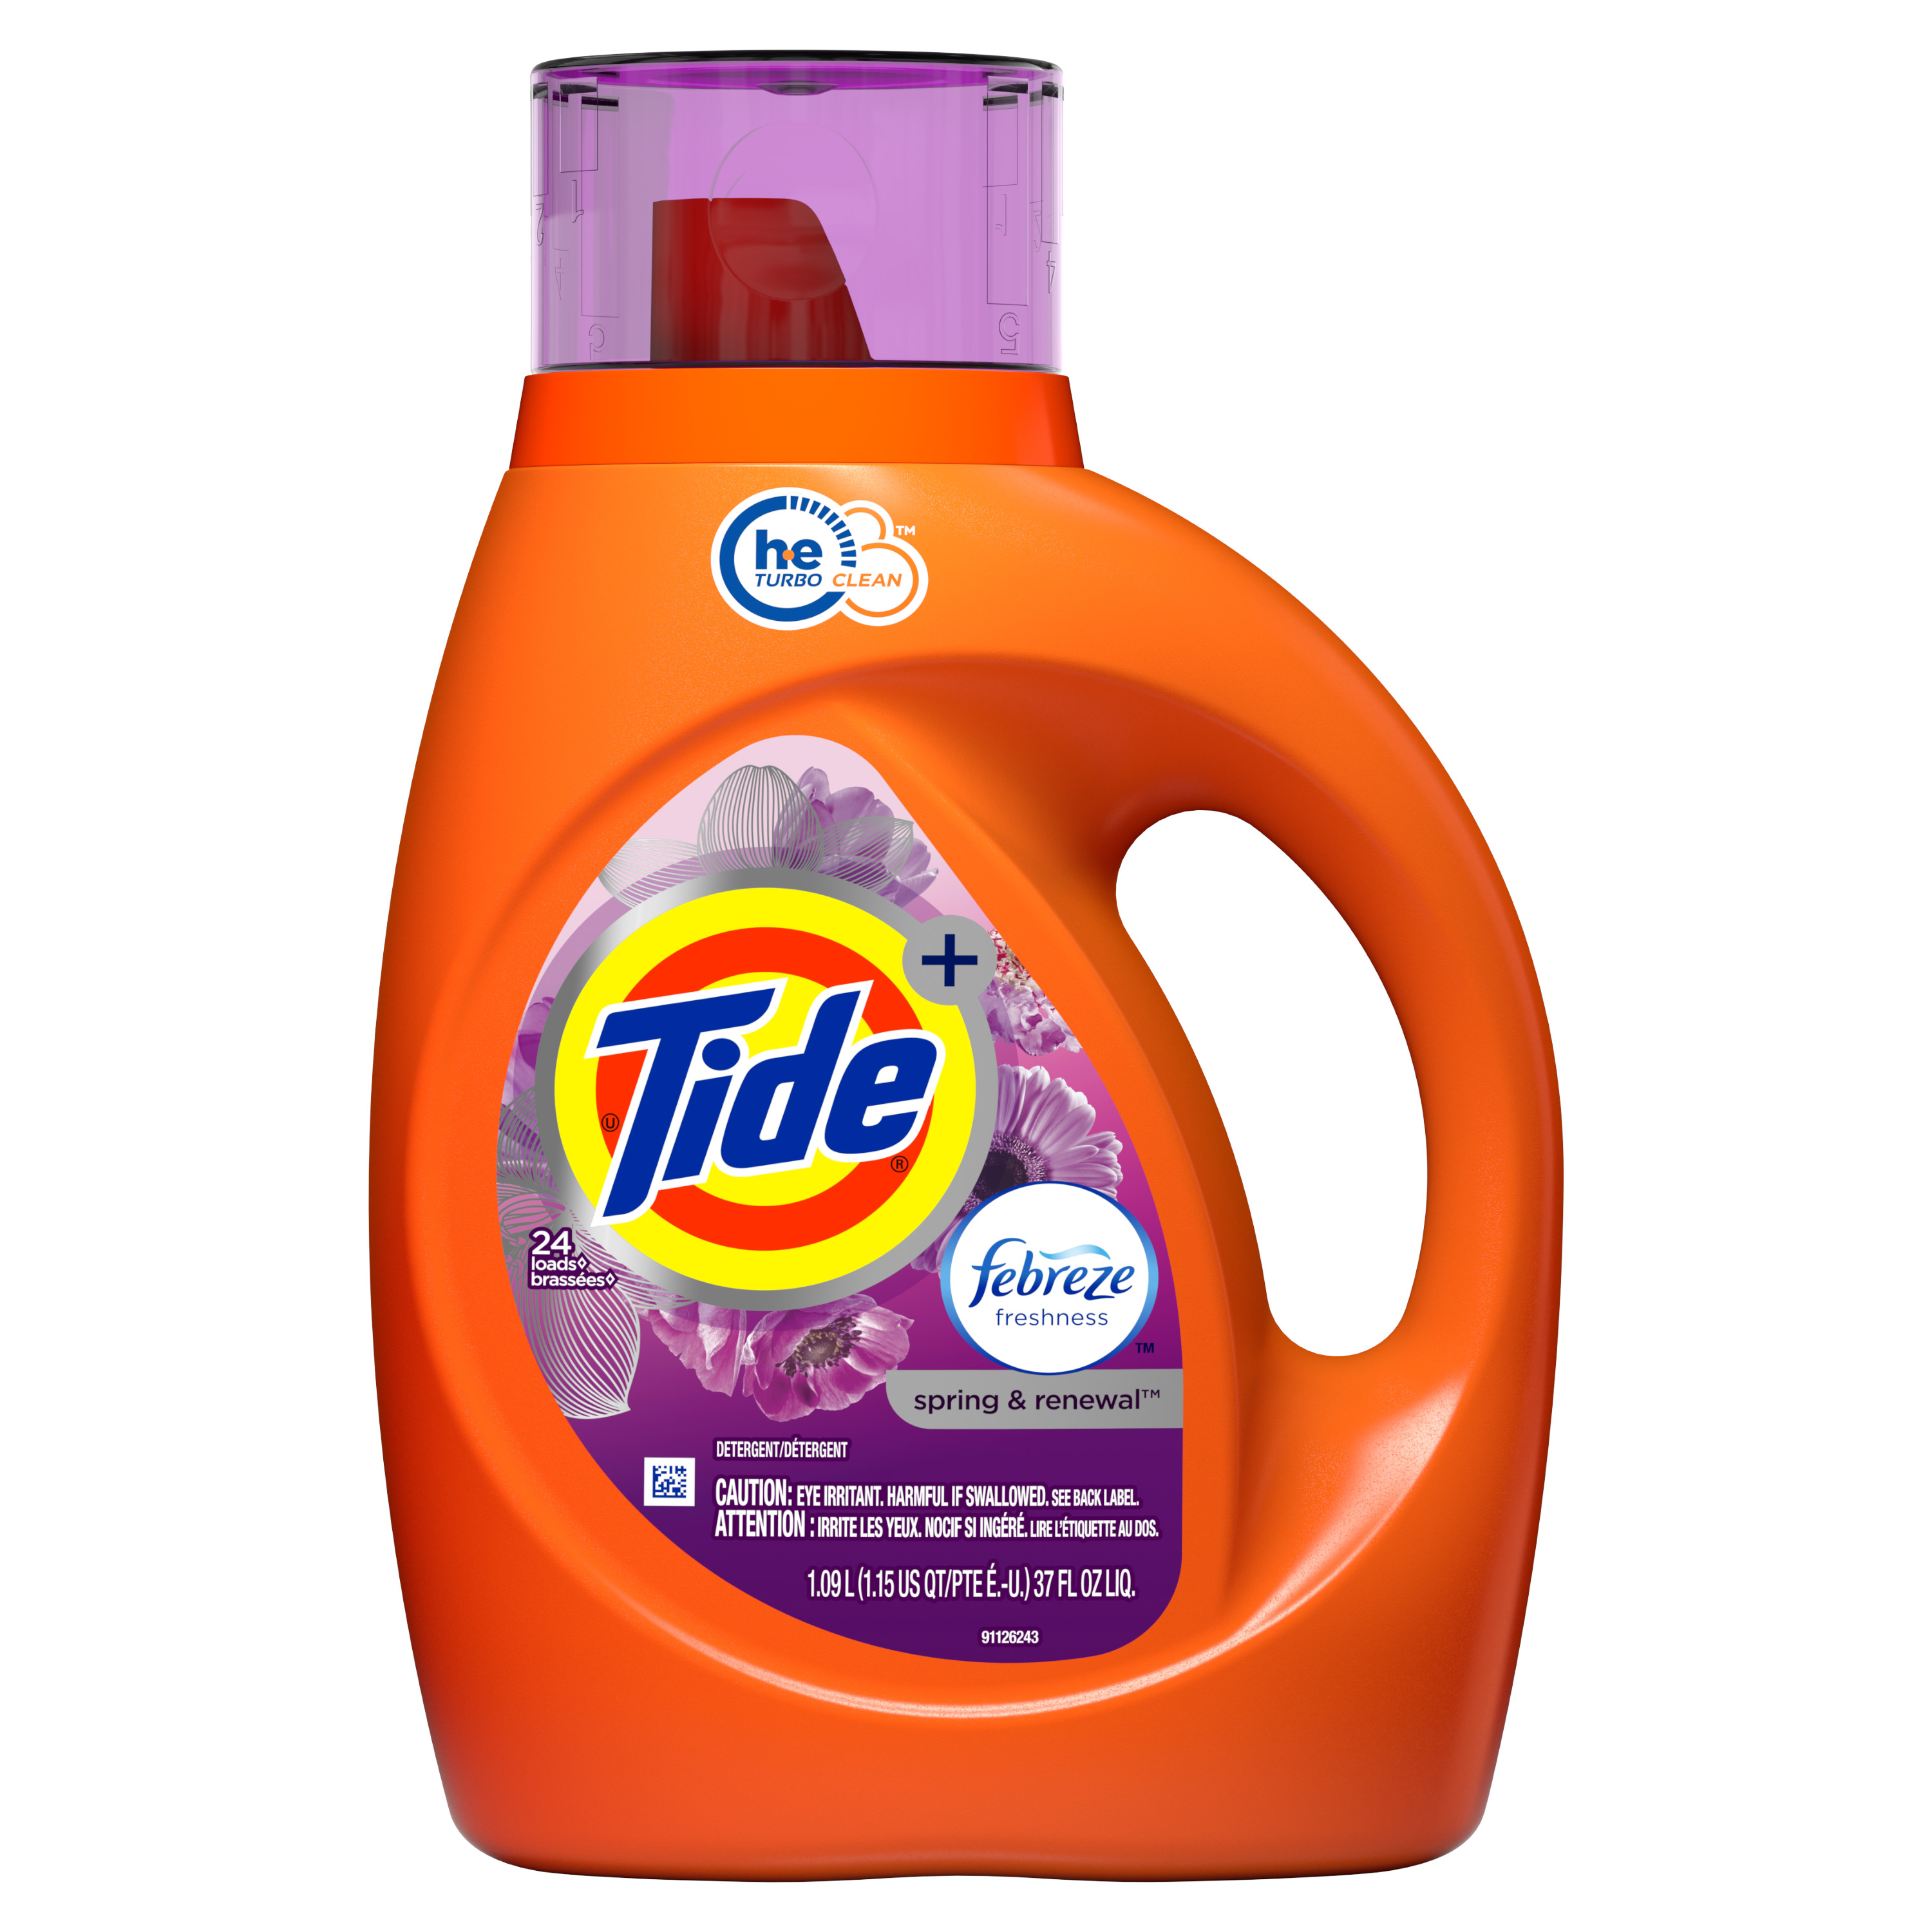 Tide Plus Febreze Freshness Spring & Renewal HE Turbo Clean Liquid Laundry Detergent, 37 fl oz 24 loads